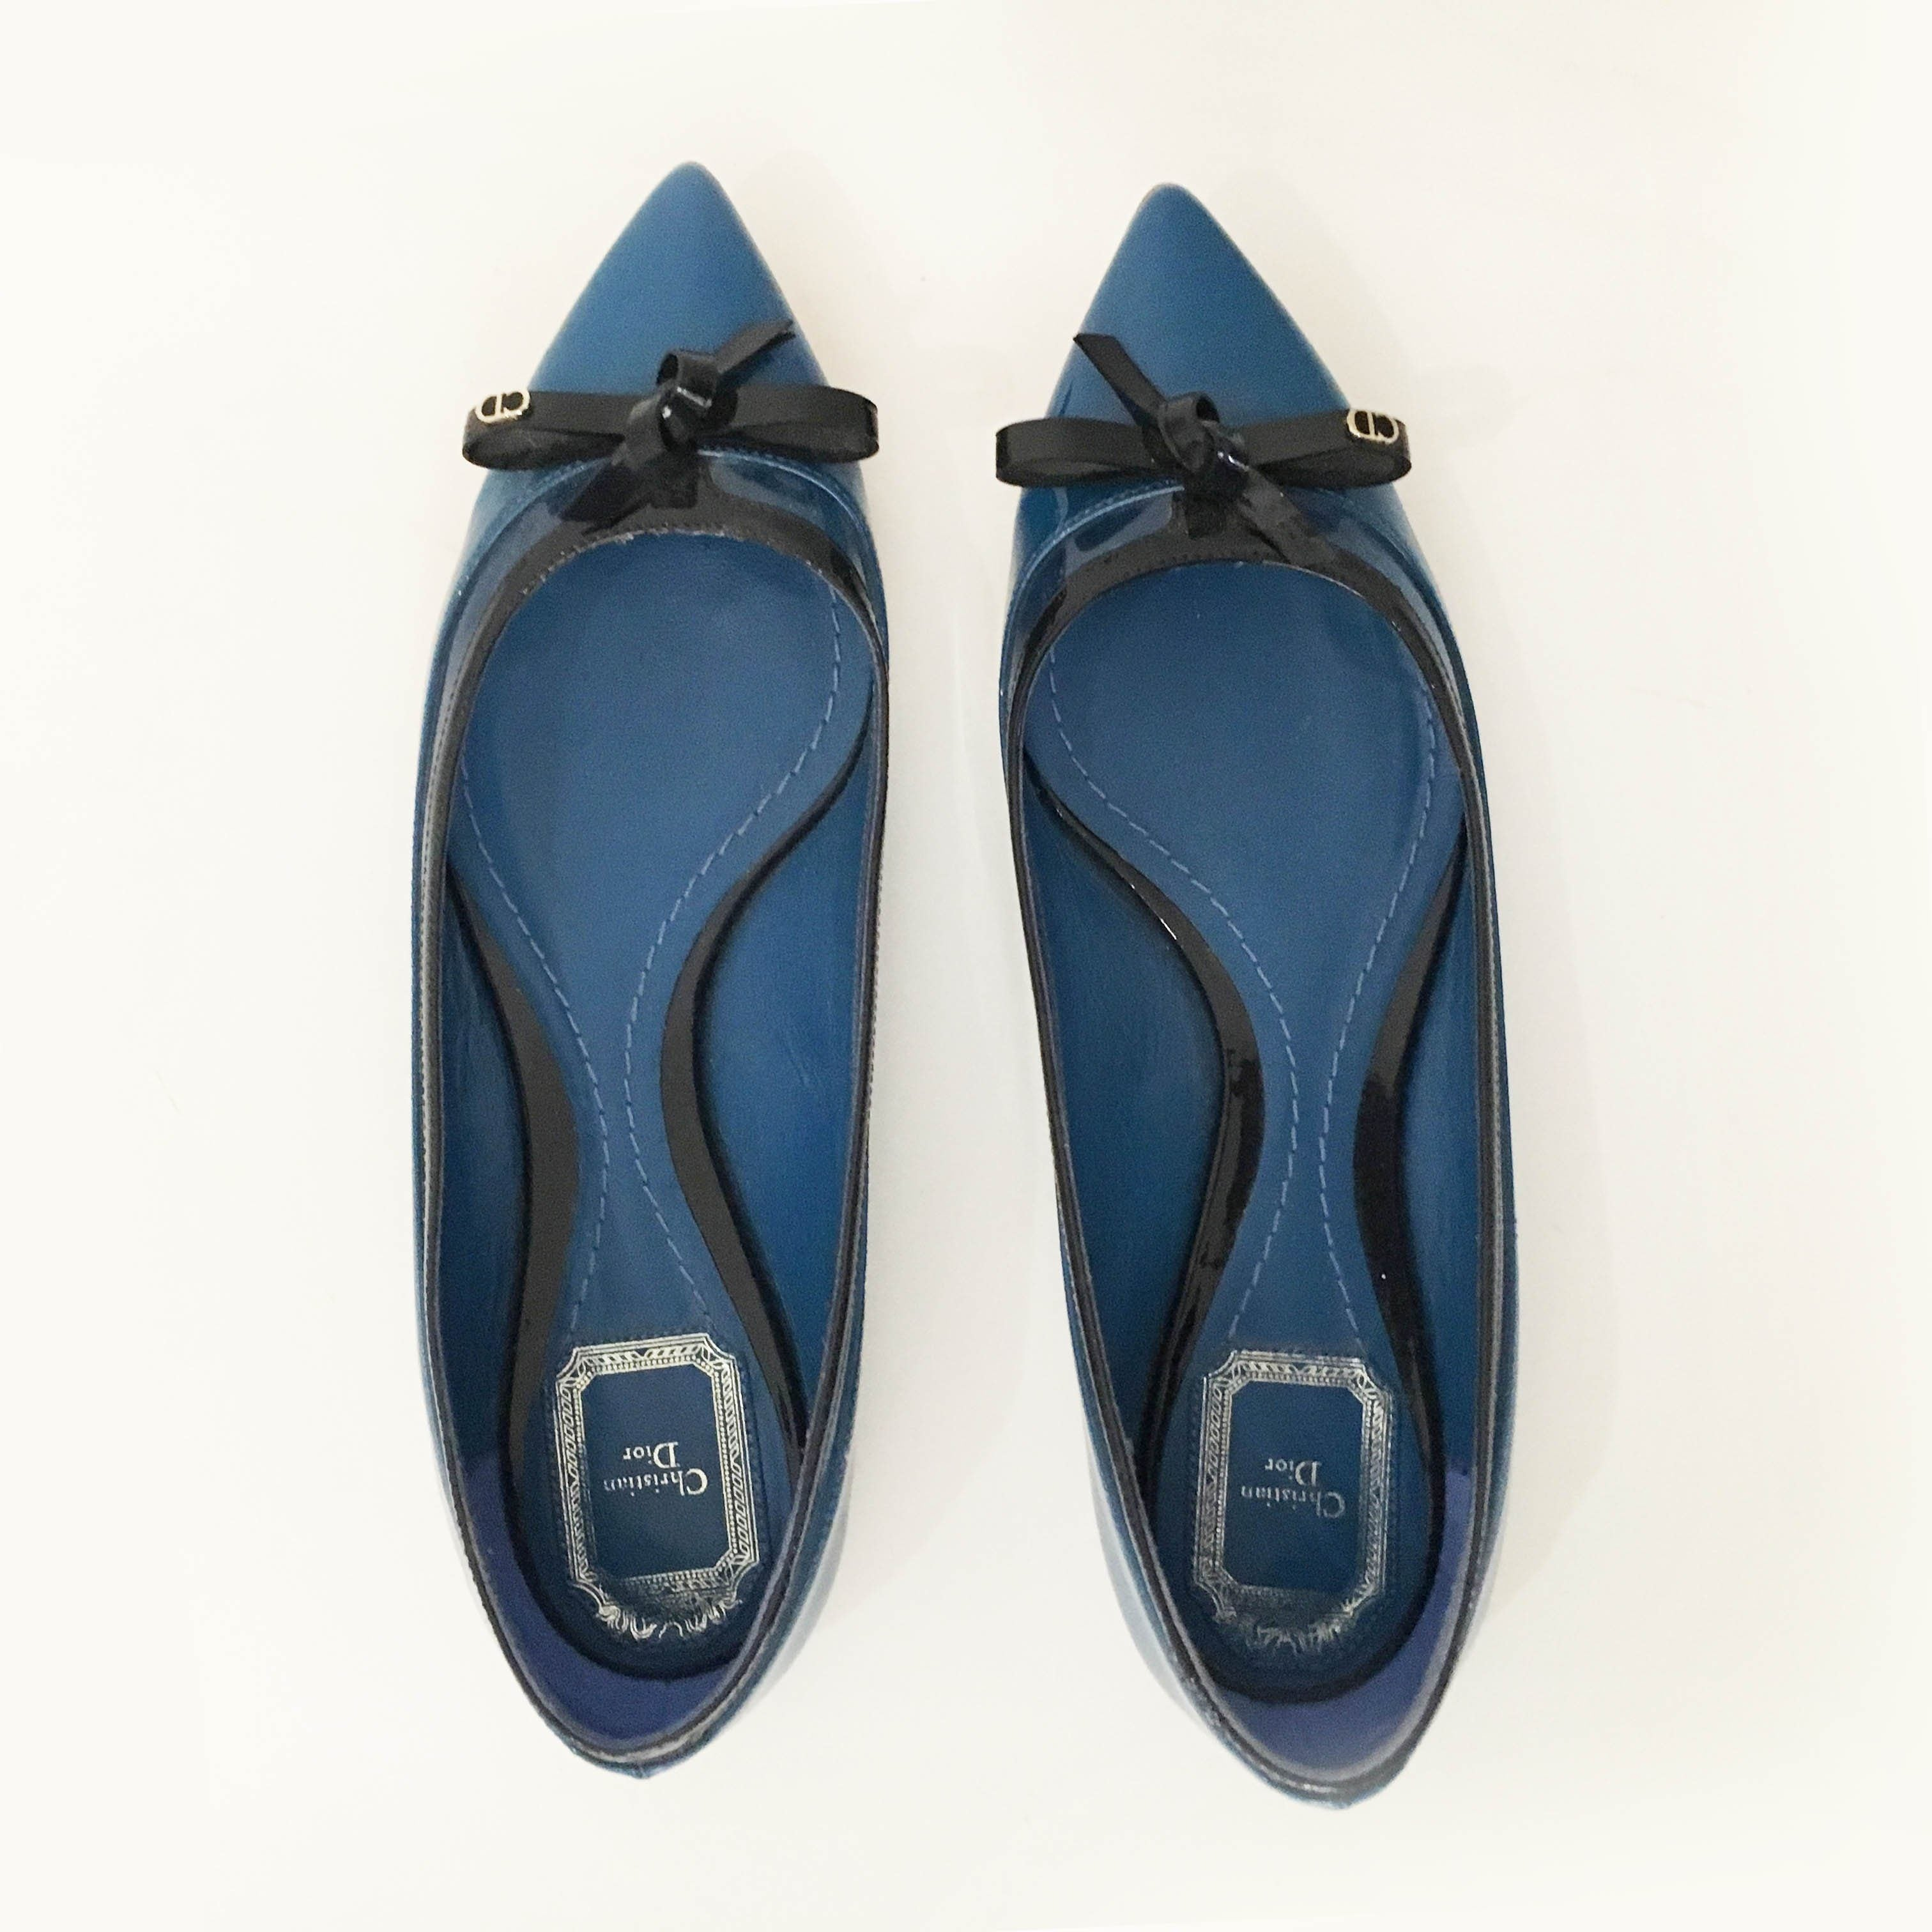 Christian Dior Patent Leather Pointed Flats